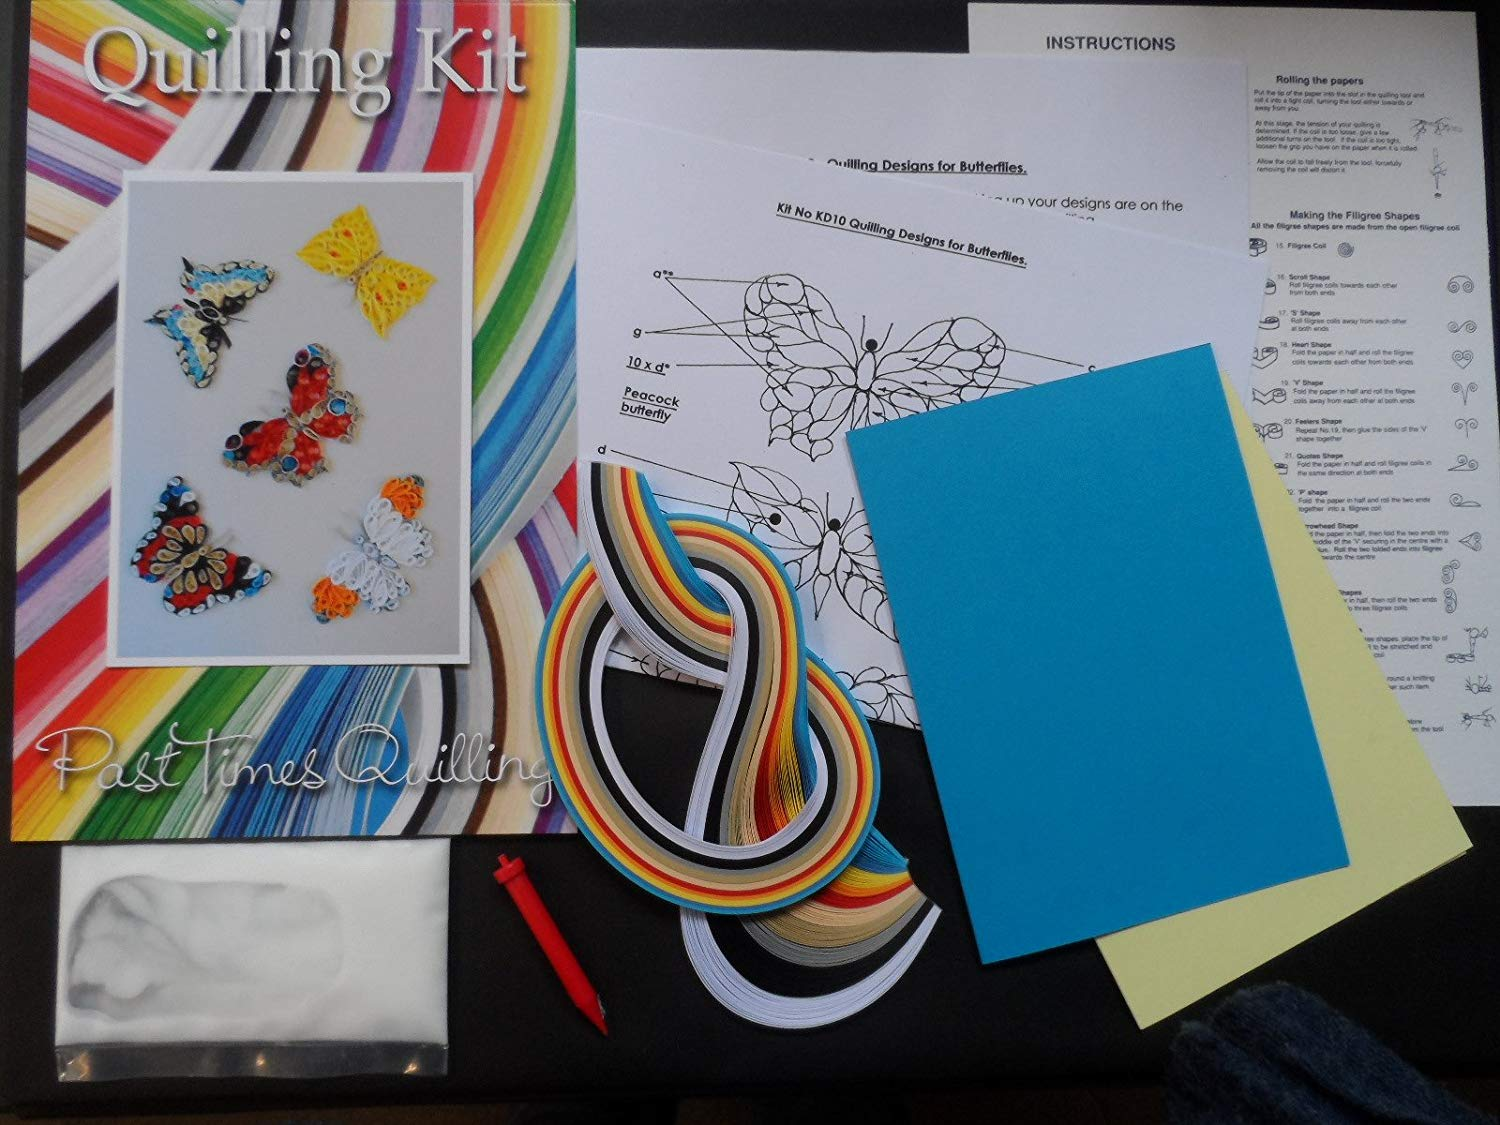 Quilling Kit - Designs for Butterflies